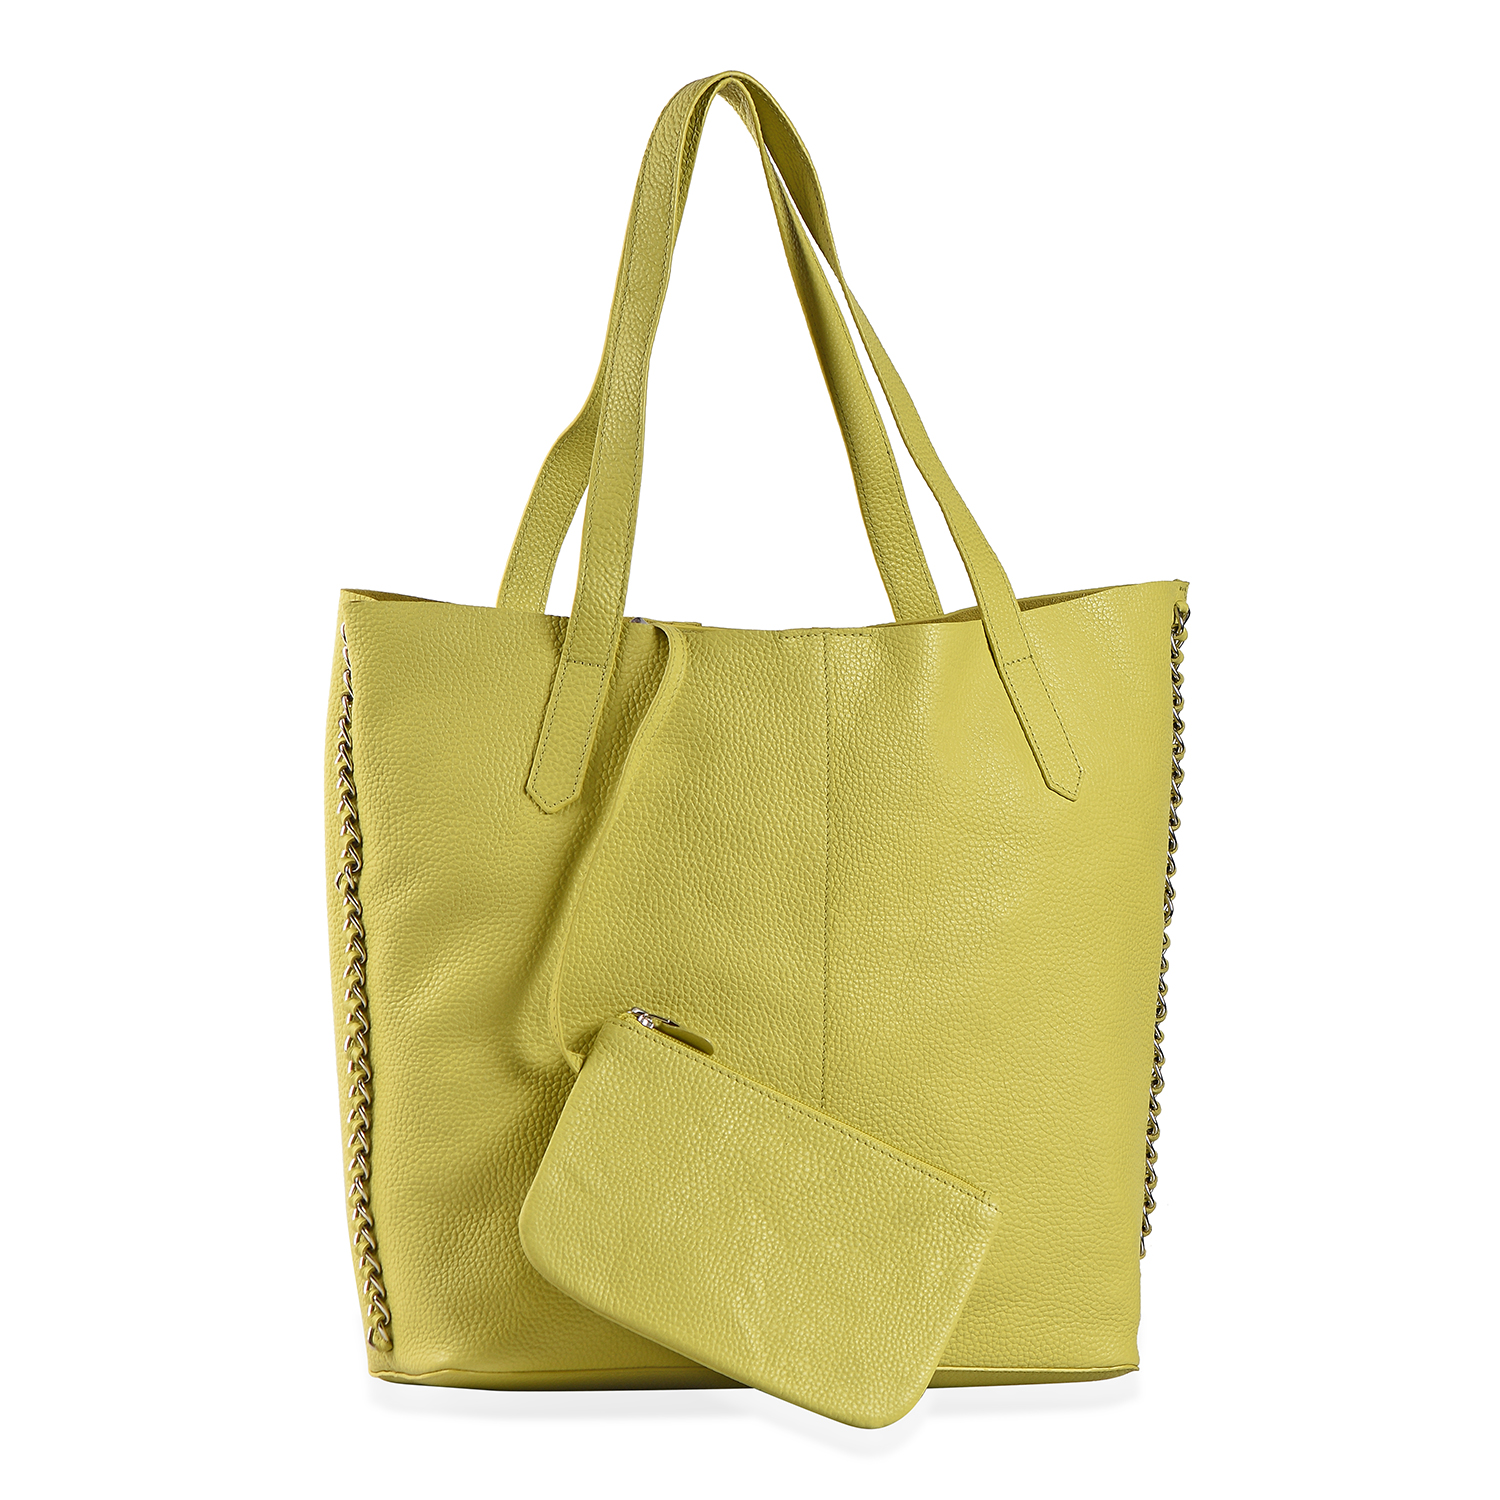 Lime Green 100 Genuine Leather Tote Bag With Snap Closure 14 5x4x13 In